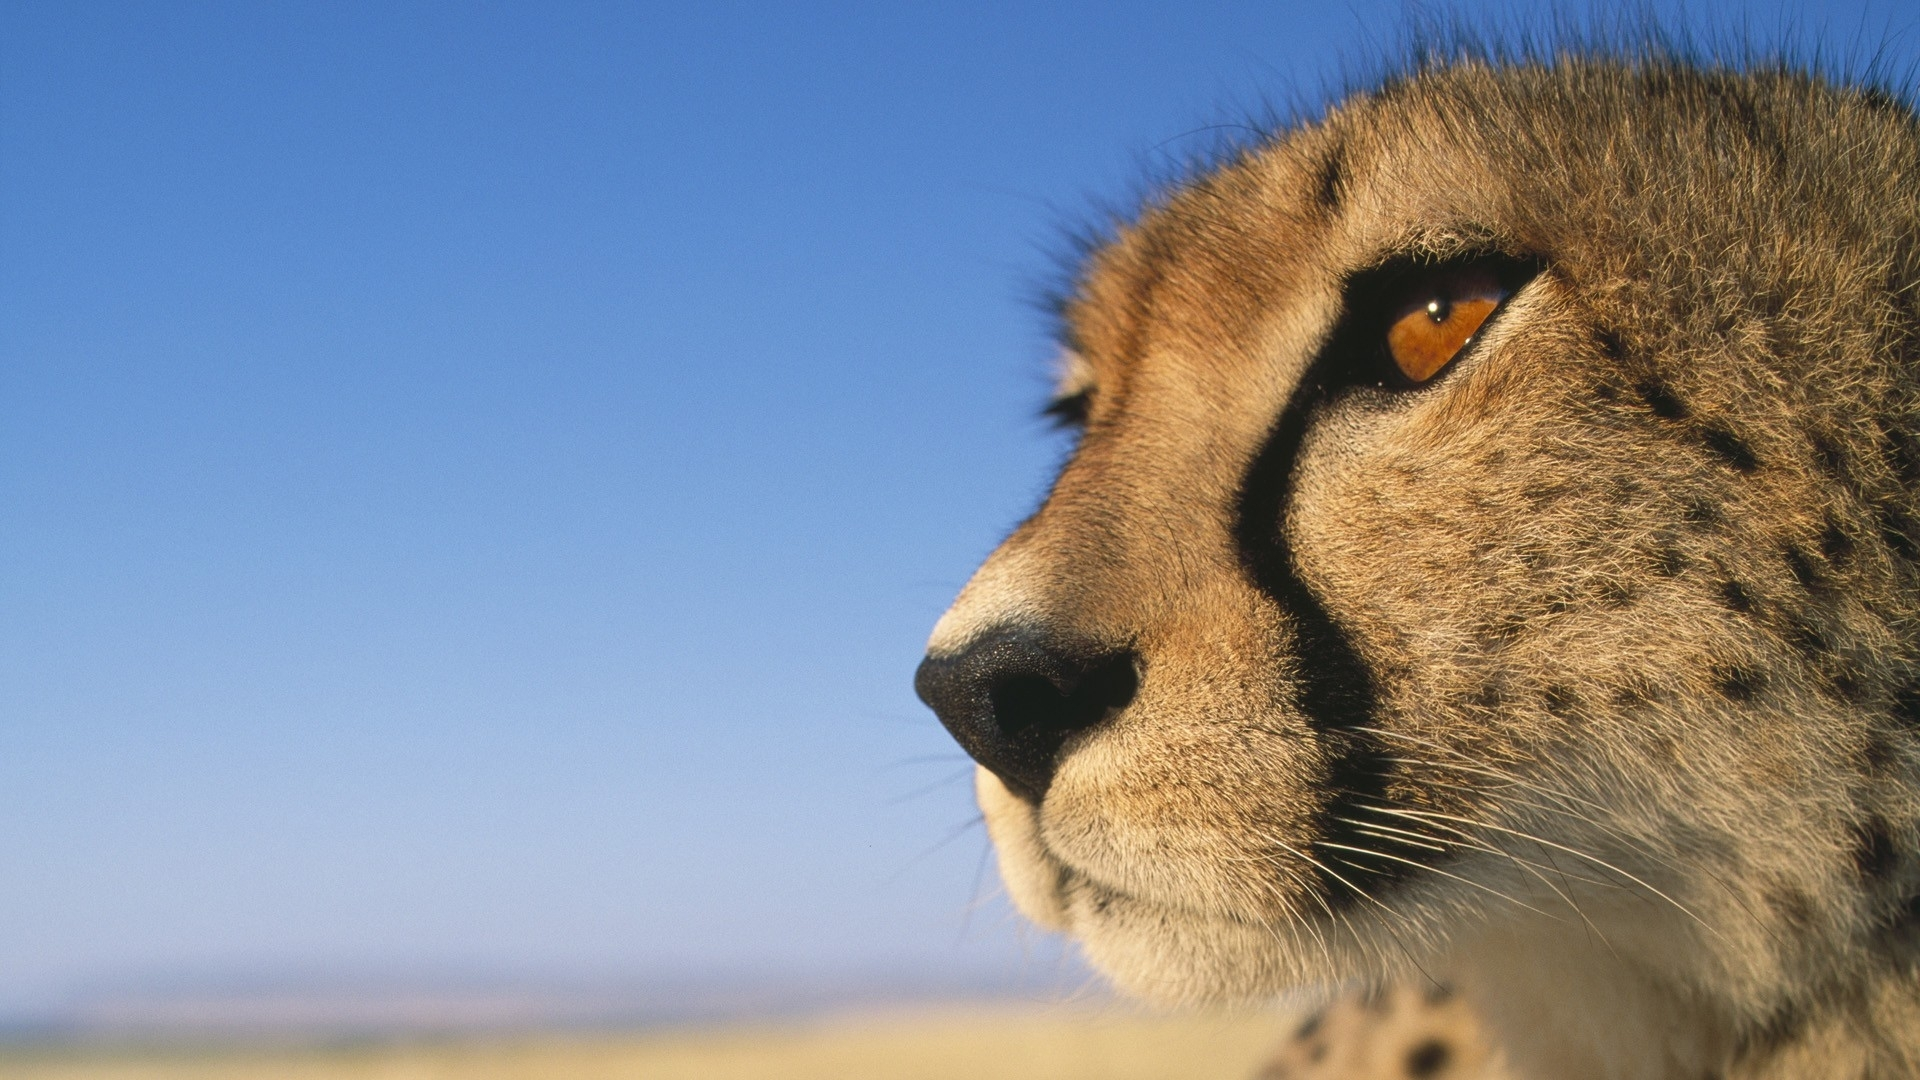 Cheetah Wallpapers HD | PixelsTalk Net